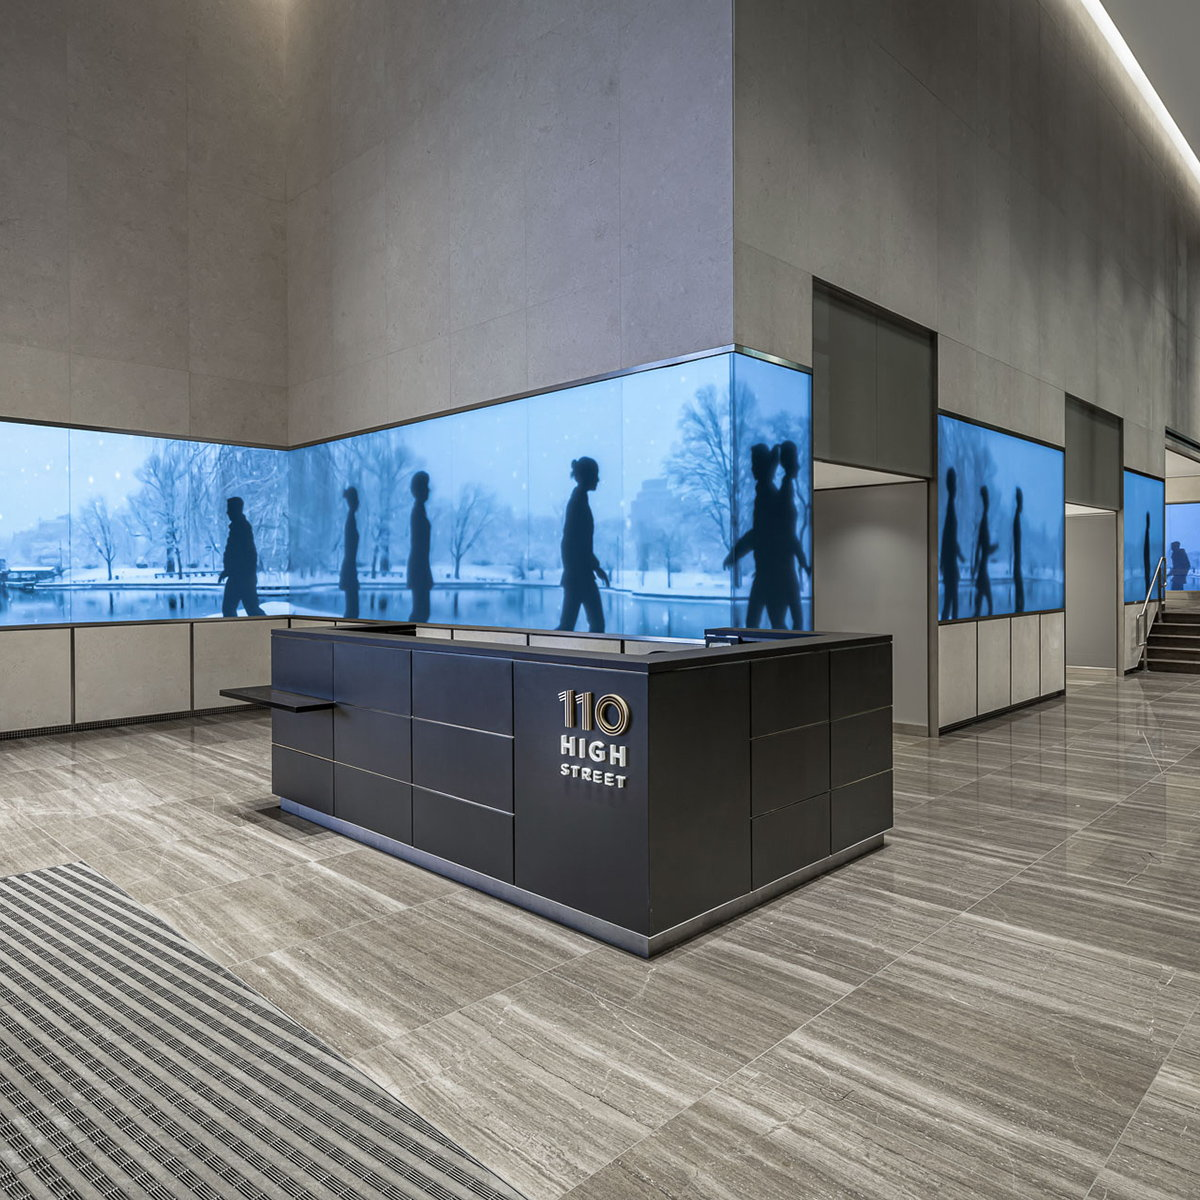 Boston Media Band at 110 High Street by ESI Design